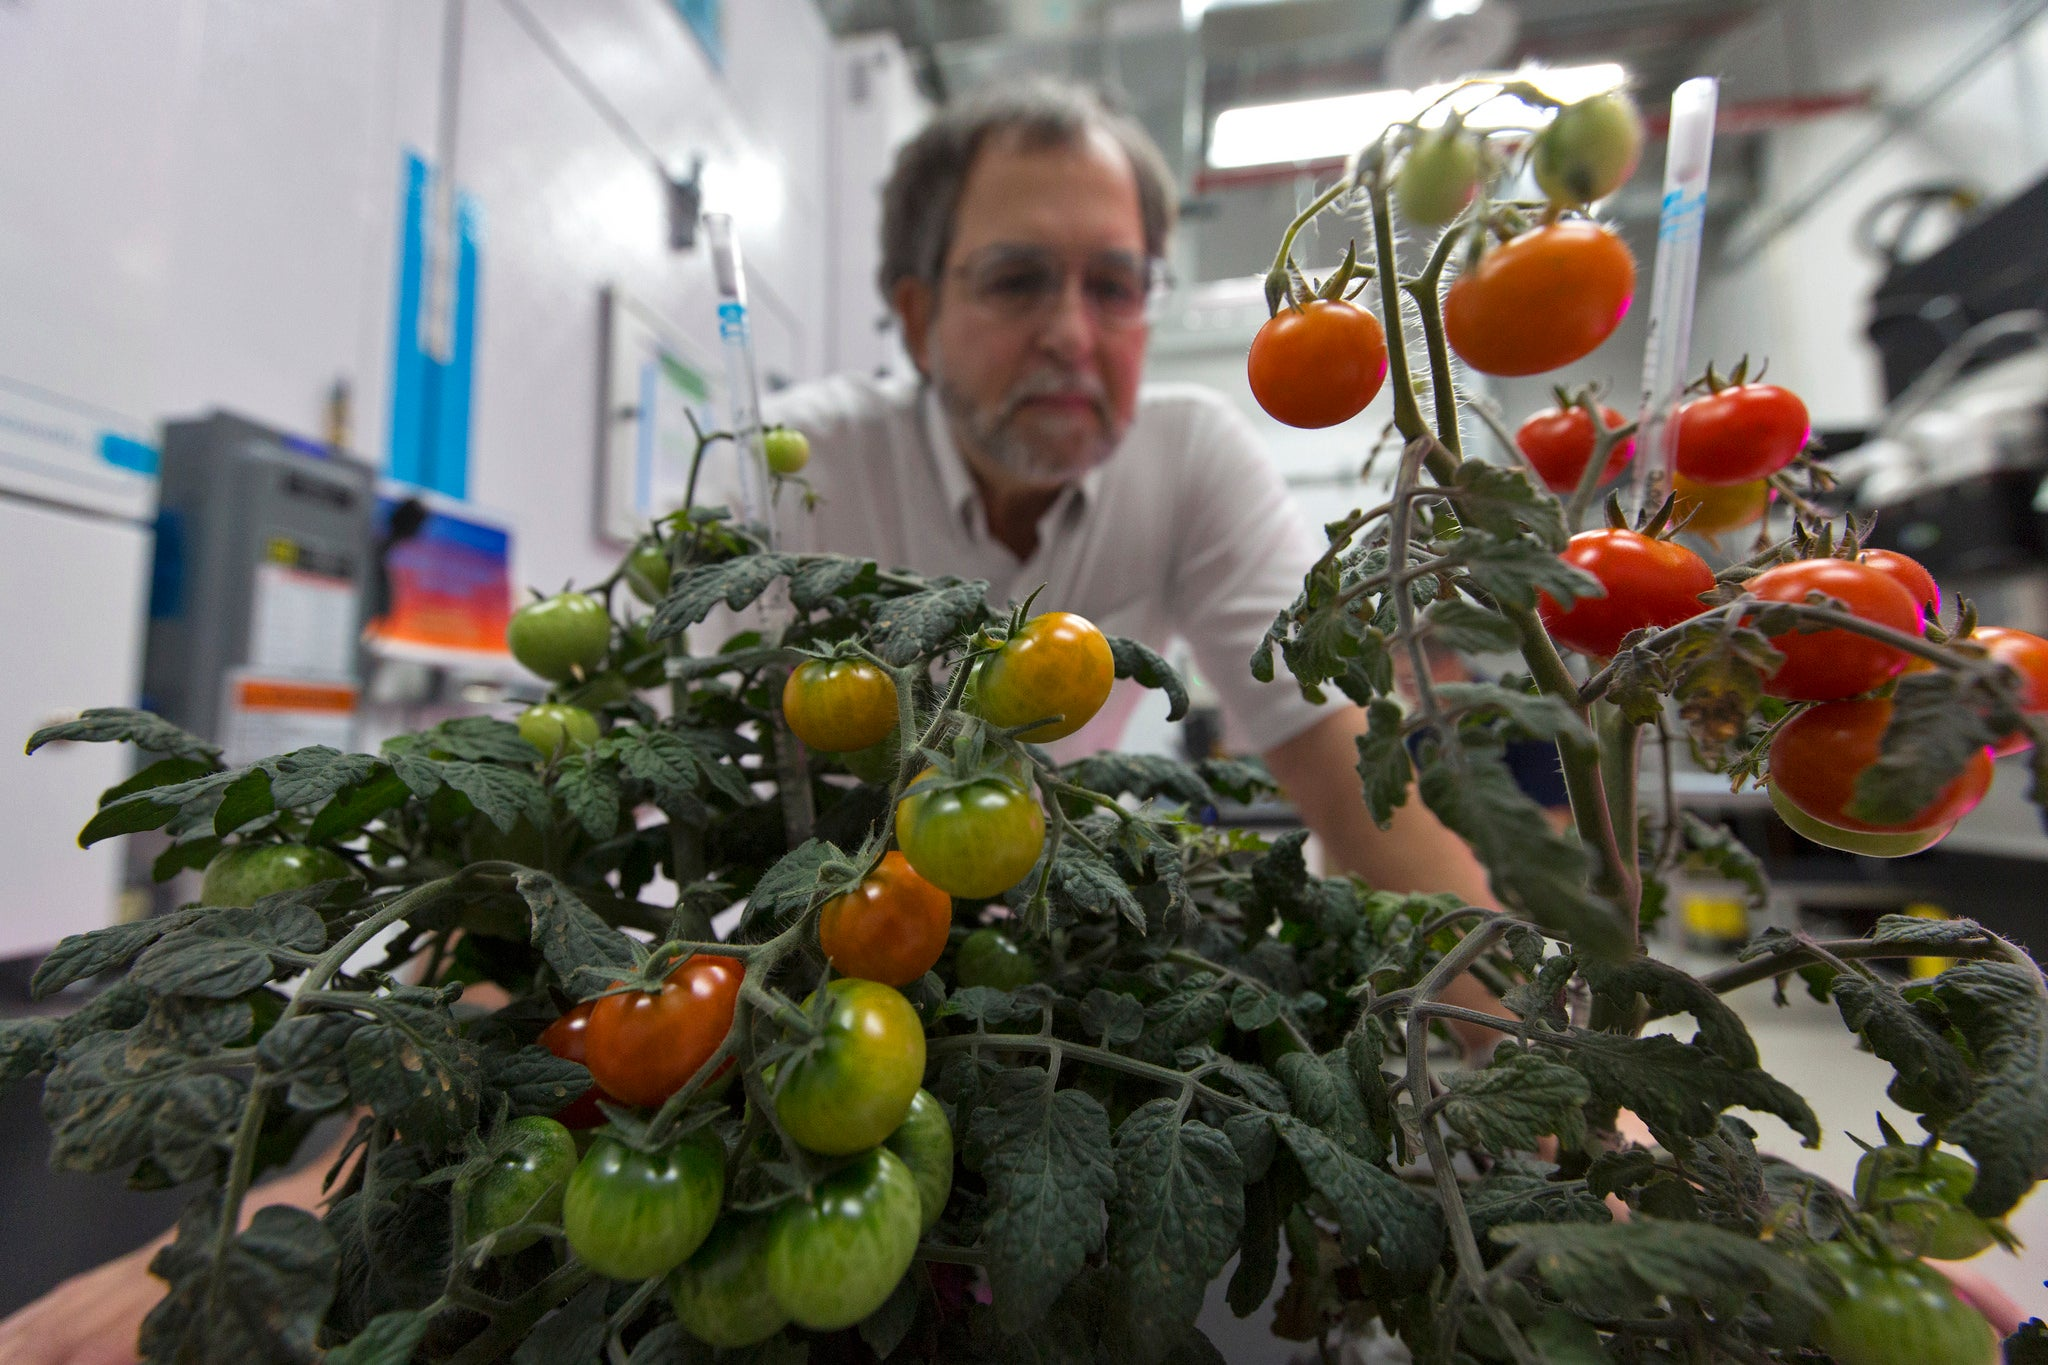 Watering space plants is hard, but NASA has a plan